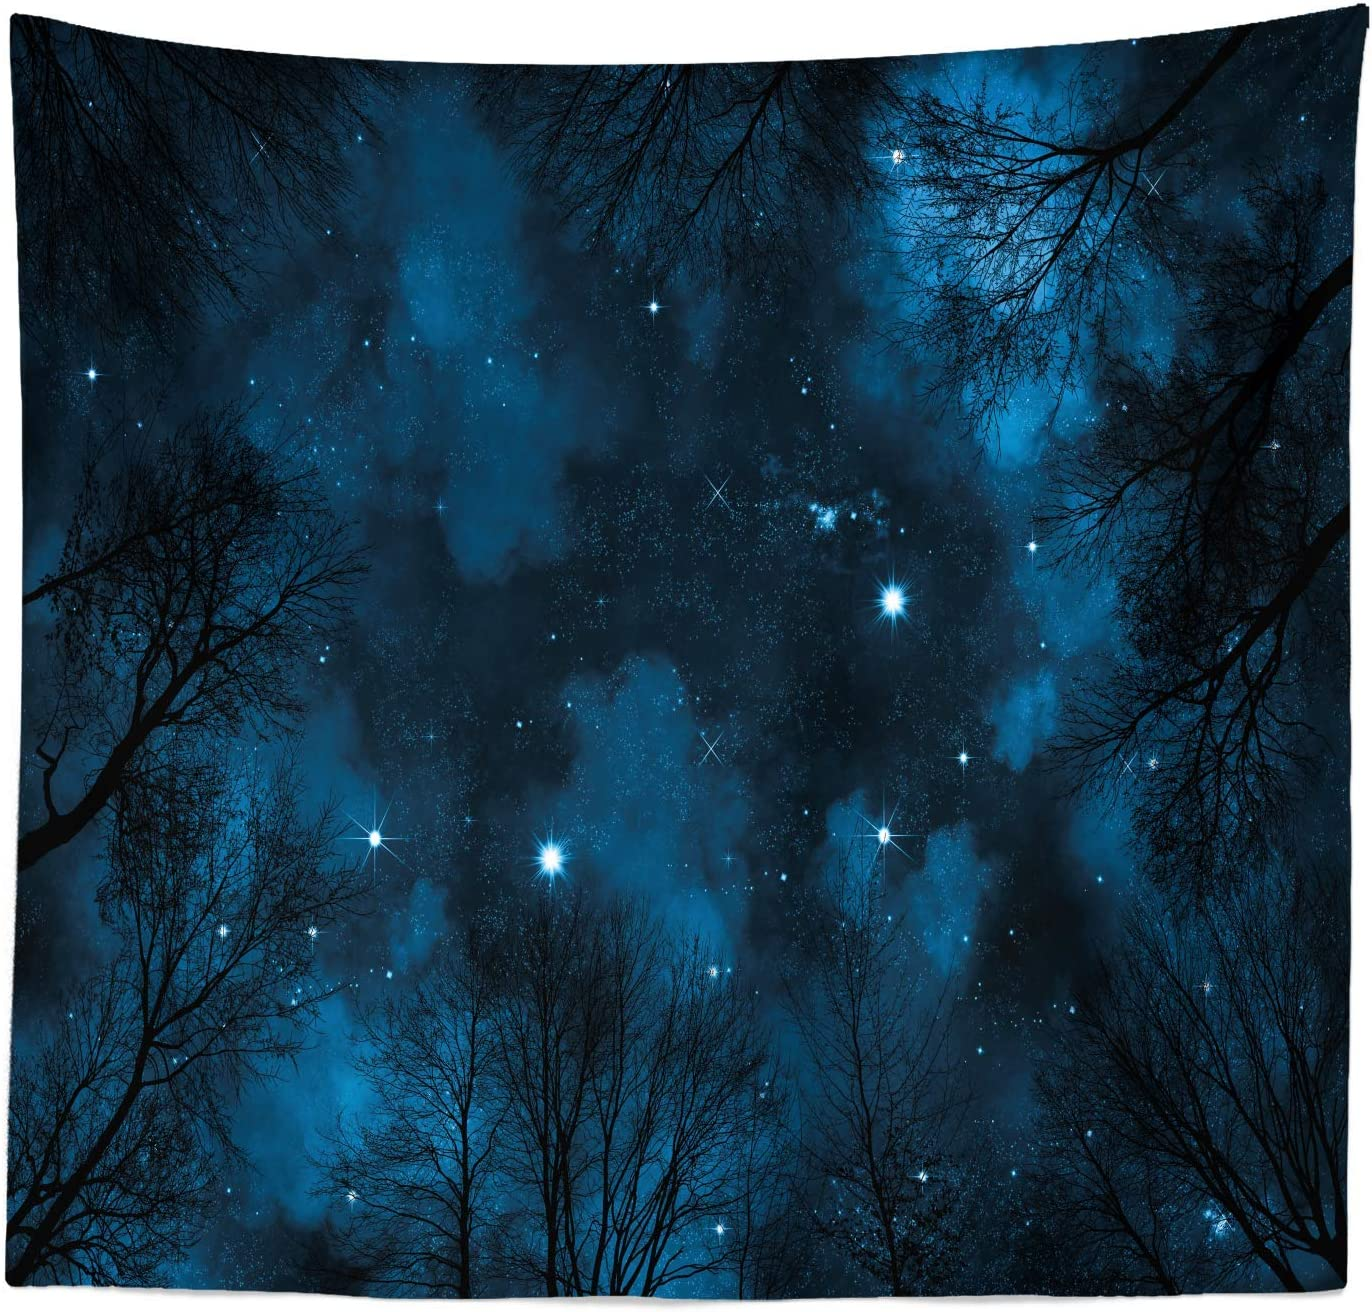 """Lunarable Night Sky Tapestry Queen Size, Spooky View Through Forest Branches Trees Foggy Sky with Stars, Wall Hanging Bedspread Bed Cover Wall Decor, 88"""" X 88"""", Petrol Blue"""